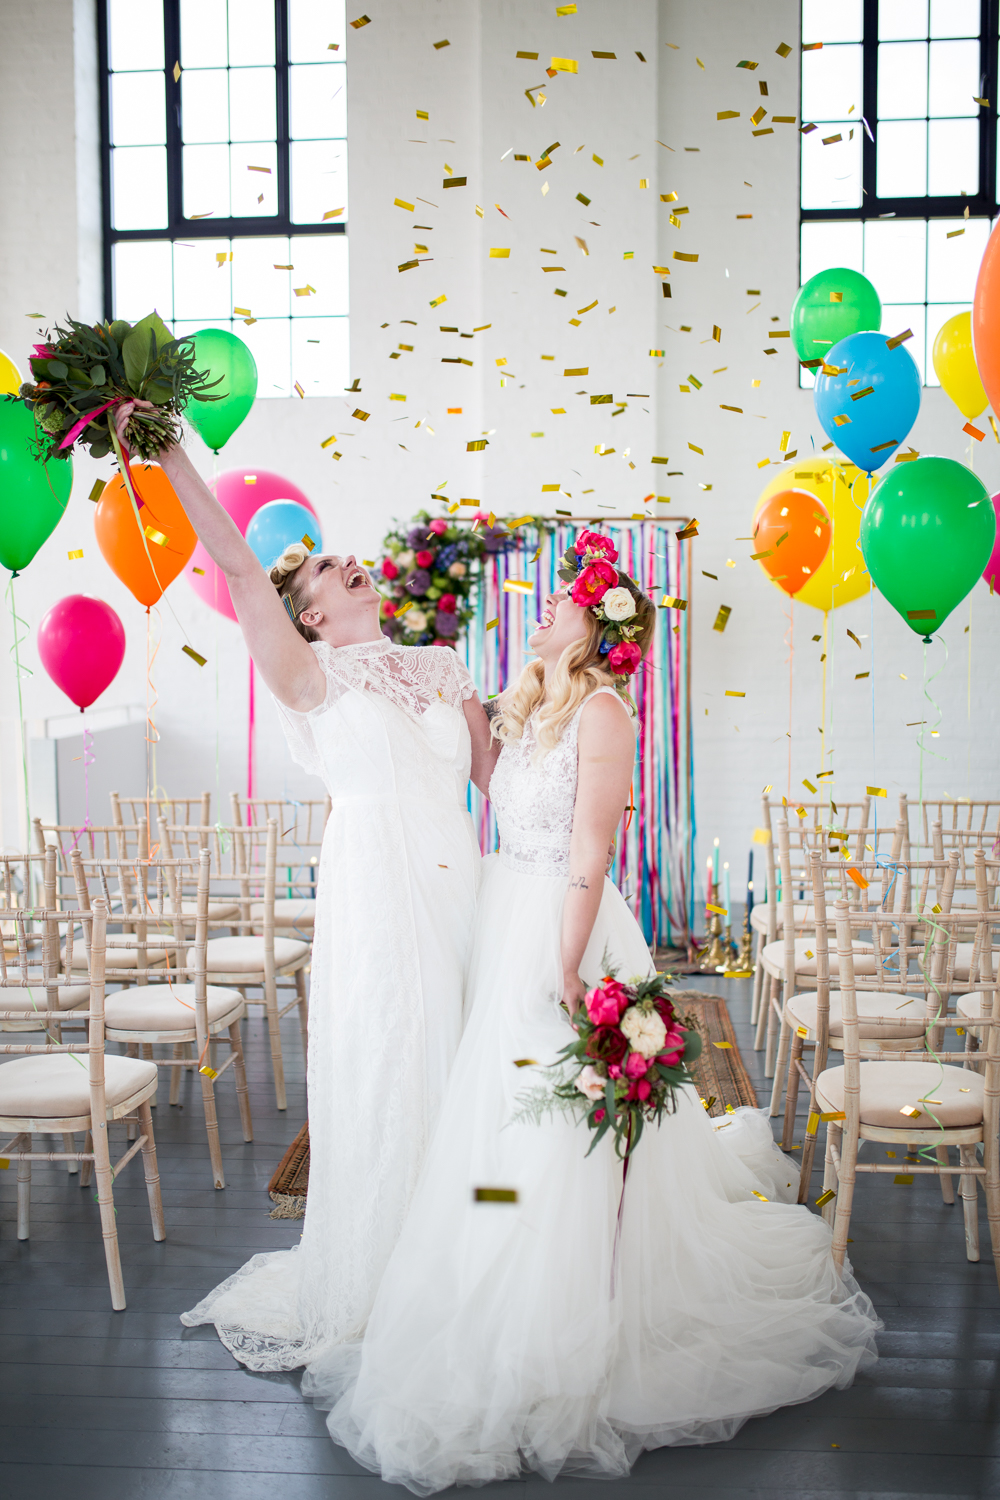 Cool and colourful wedding- Florence Berry Photography- Colourful Wedding- Rainbow Wedding- Unique Wedding- Unconventional Wedding- Wedding Ideas- Unique Wedding Dress- Wedding Planning- Quirky Wedding